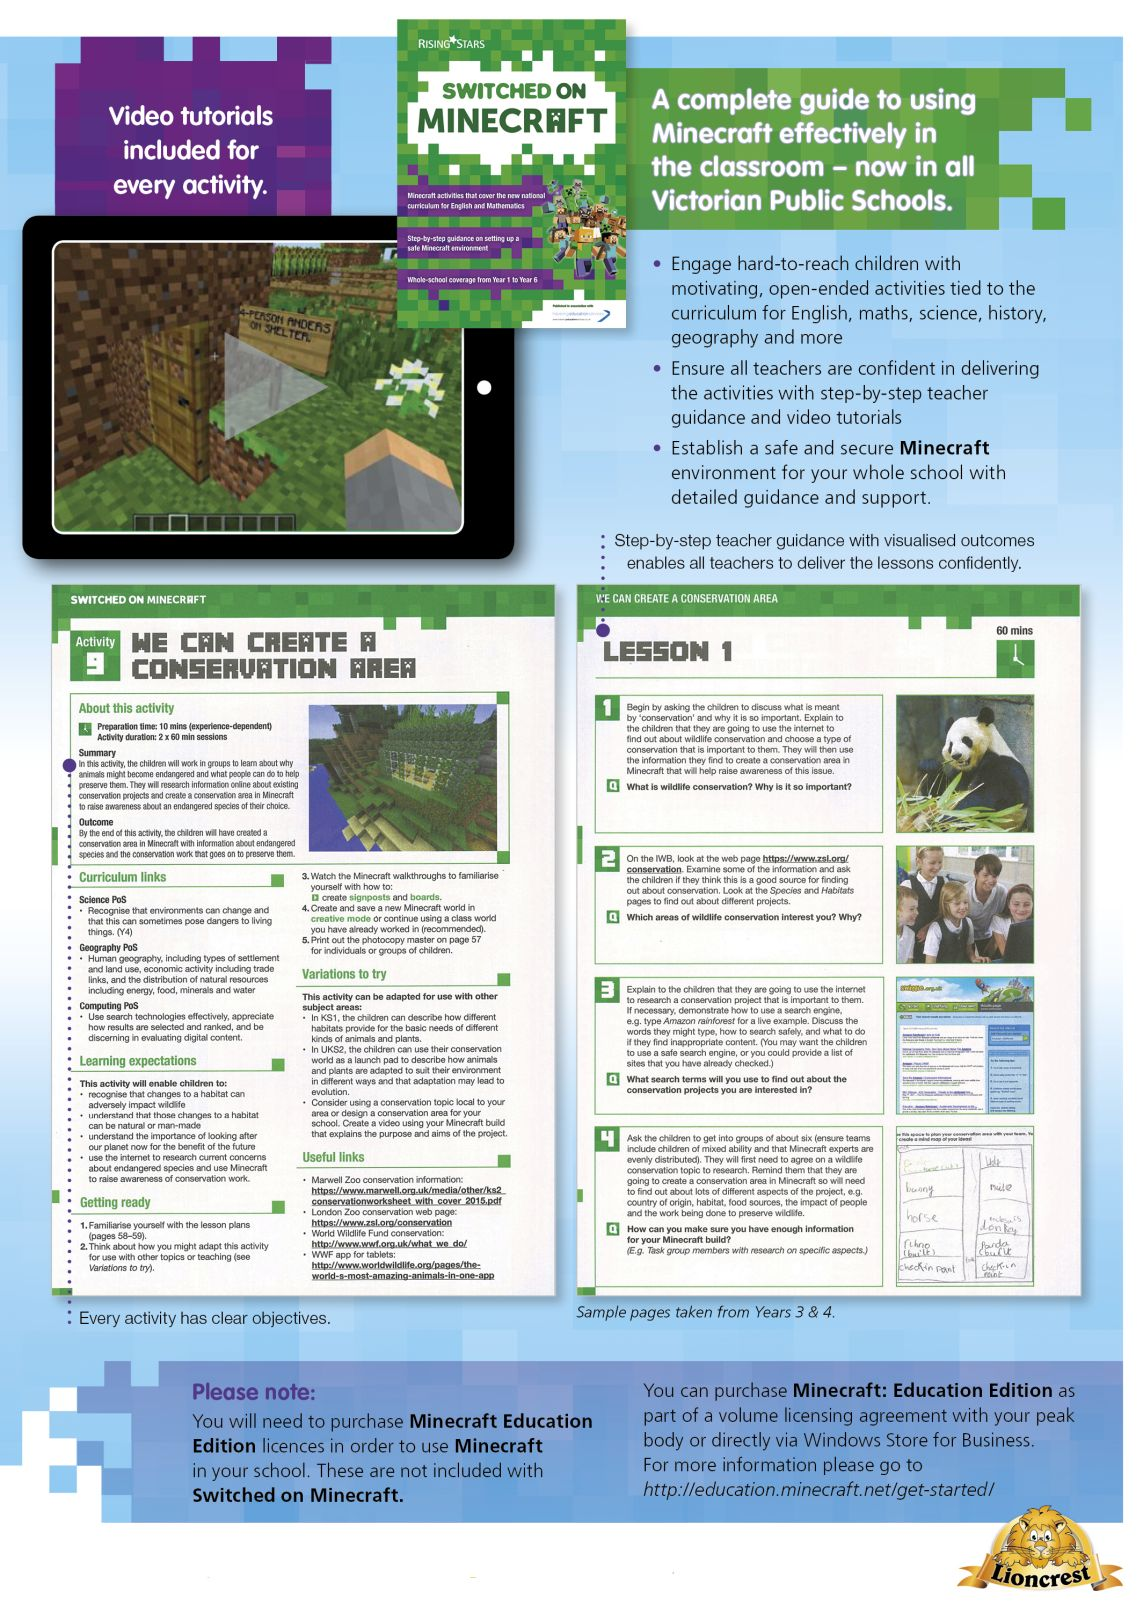 SOMinecraft_p155 Switched On Minecraft  |  Literacy Resources for Primary and Secondary Education | Lioncrest Education